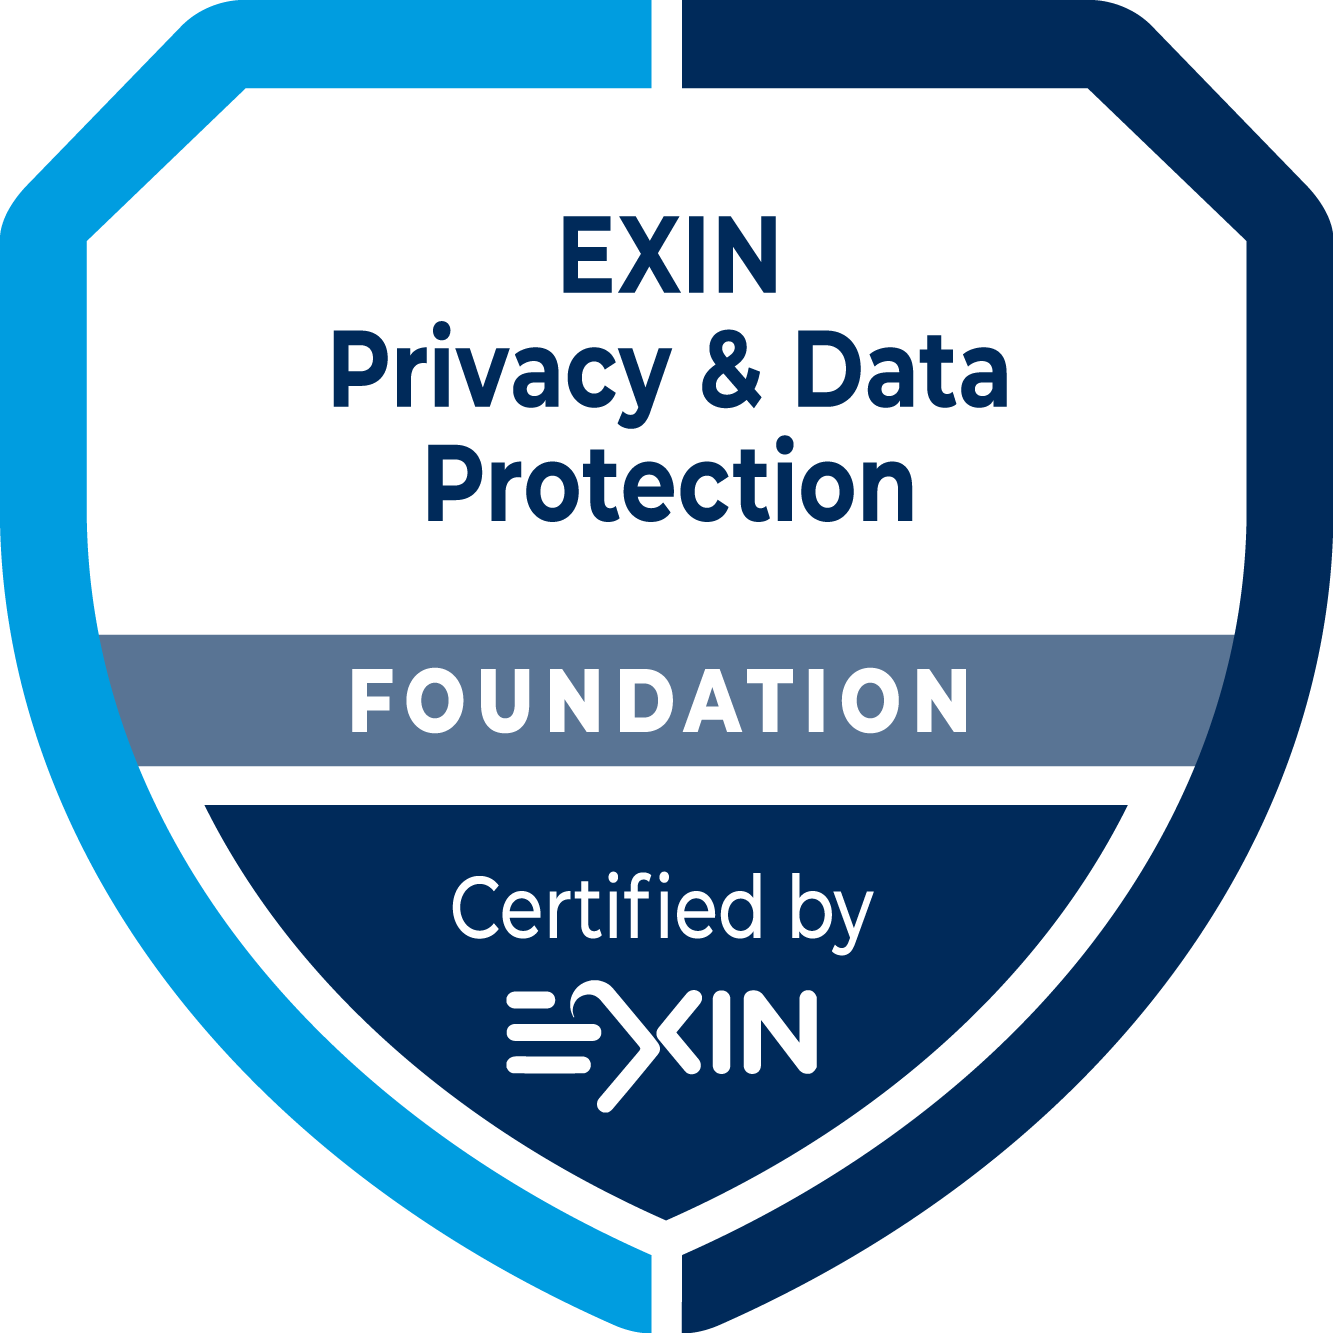 EXIN-Privacy-and-data-Protection-Foundation-1-1